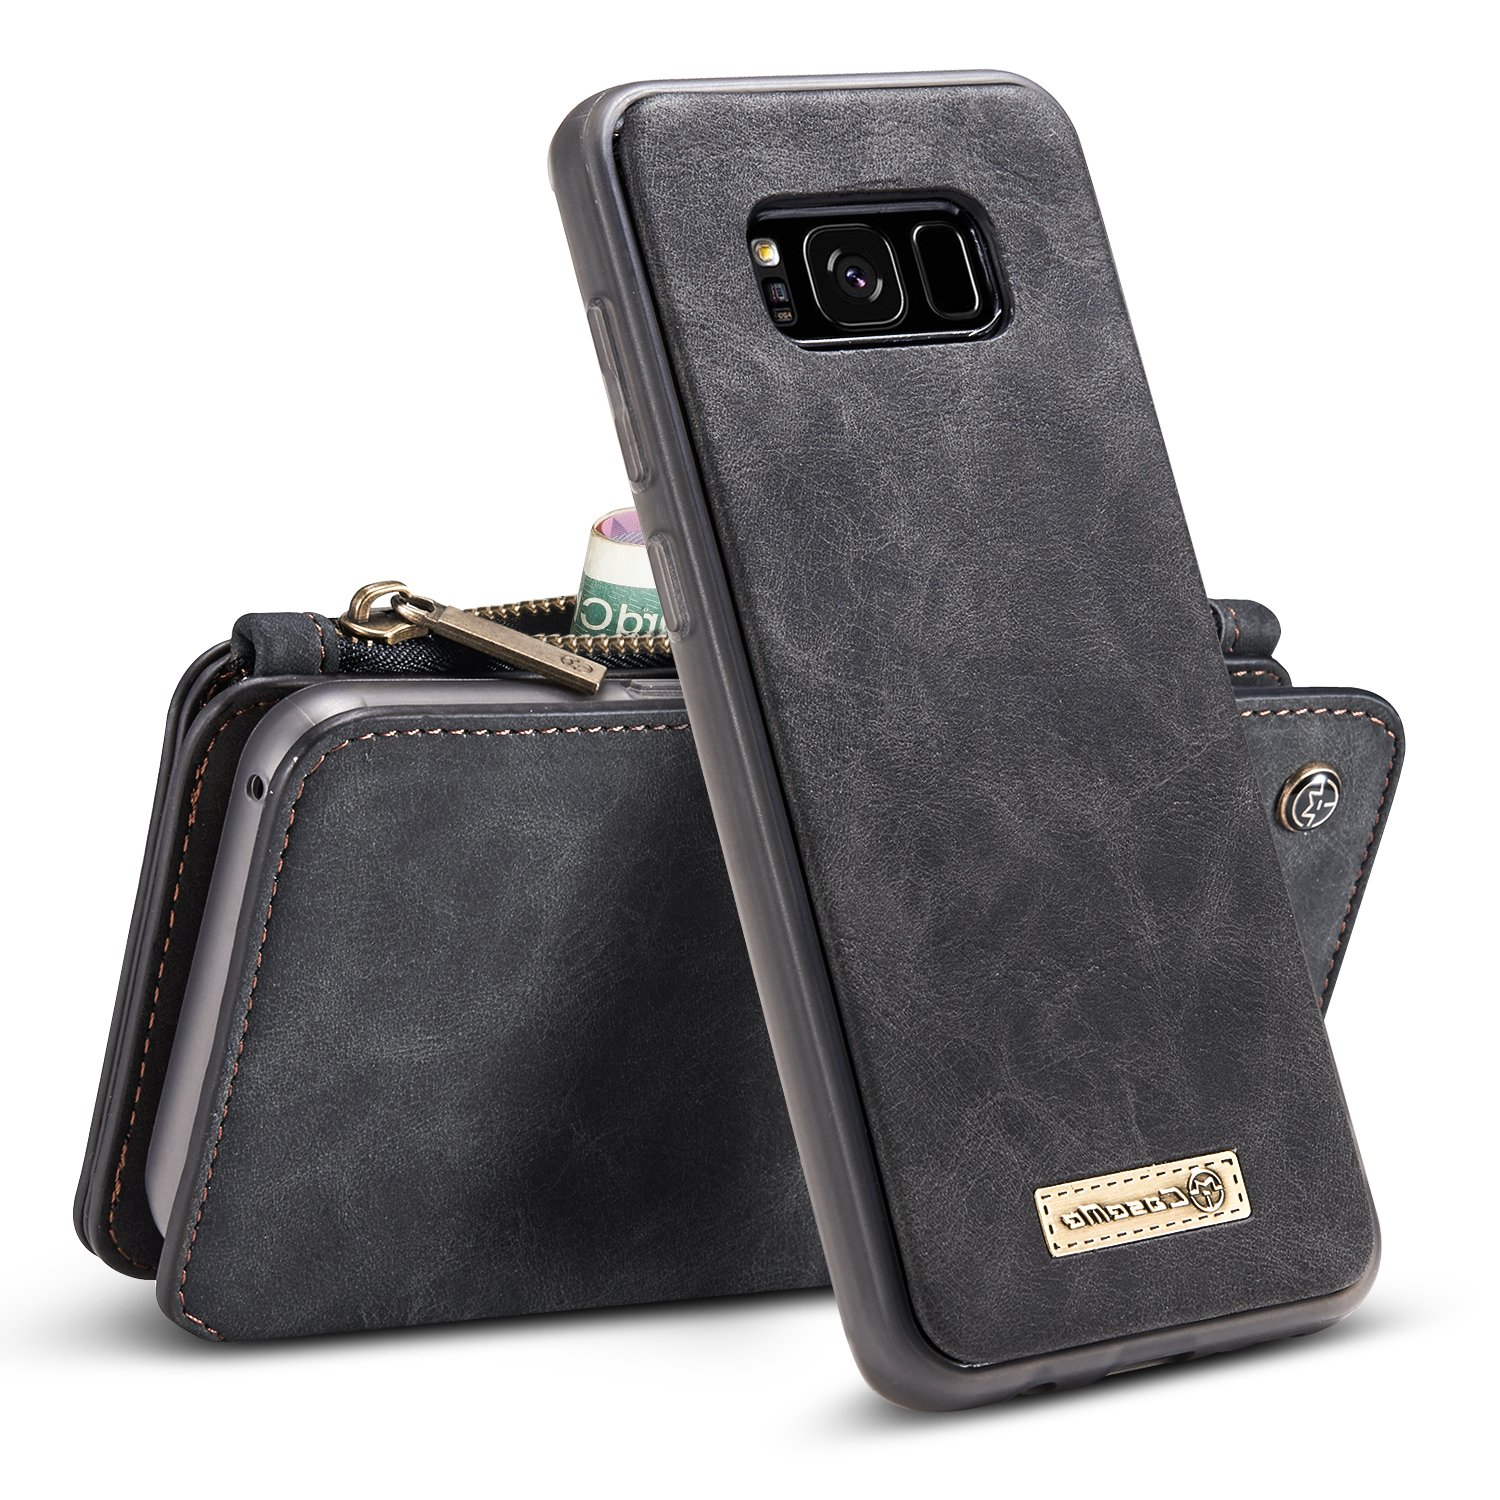 Galaxy S8 Plus Case, B BELK Detachable Magnetic Leather Wallet Large Capacity Folio Flip Card Stand Case with Removable Slim Hard PC TPU Back Cover for Samsung Galaxy S8 Plus, 6.2 Inch (Black)